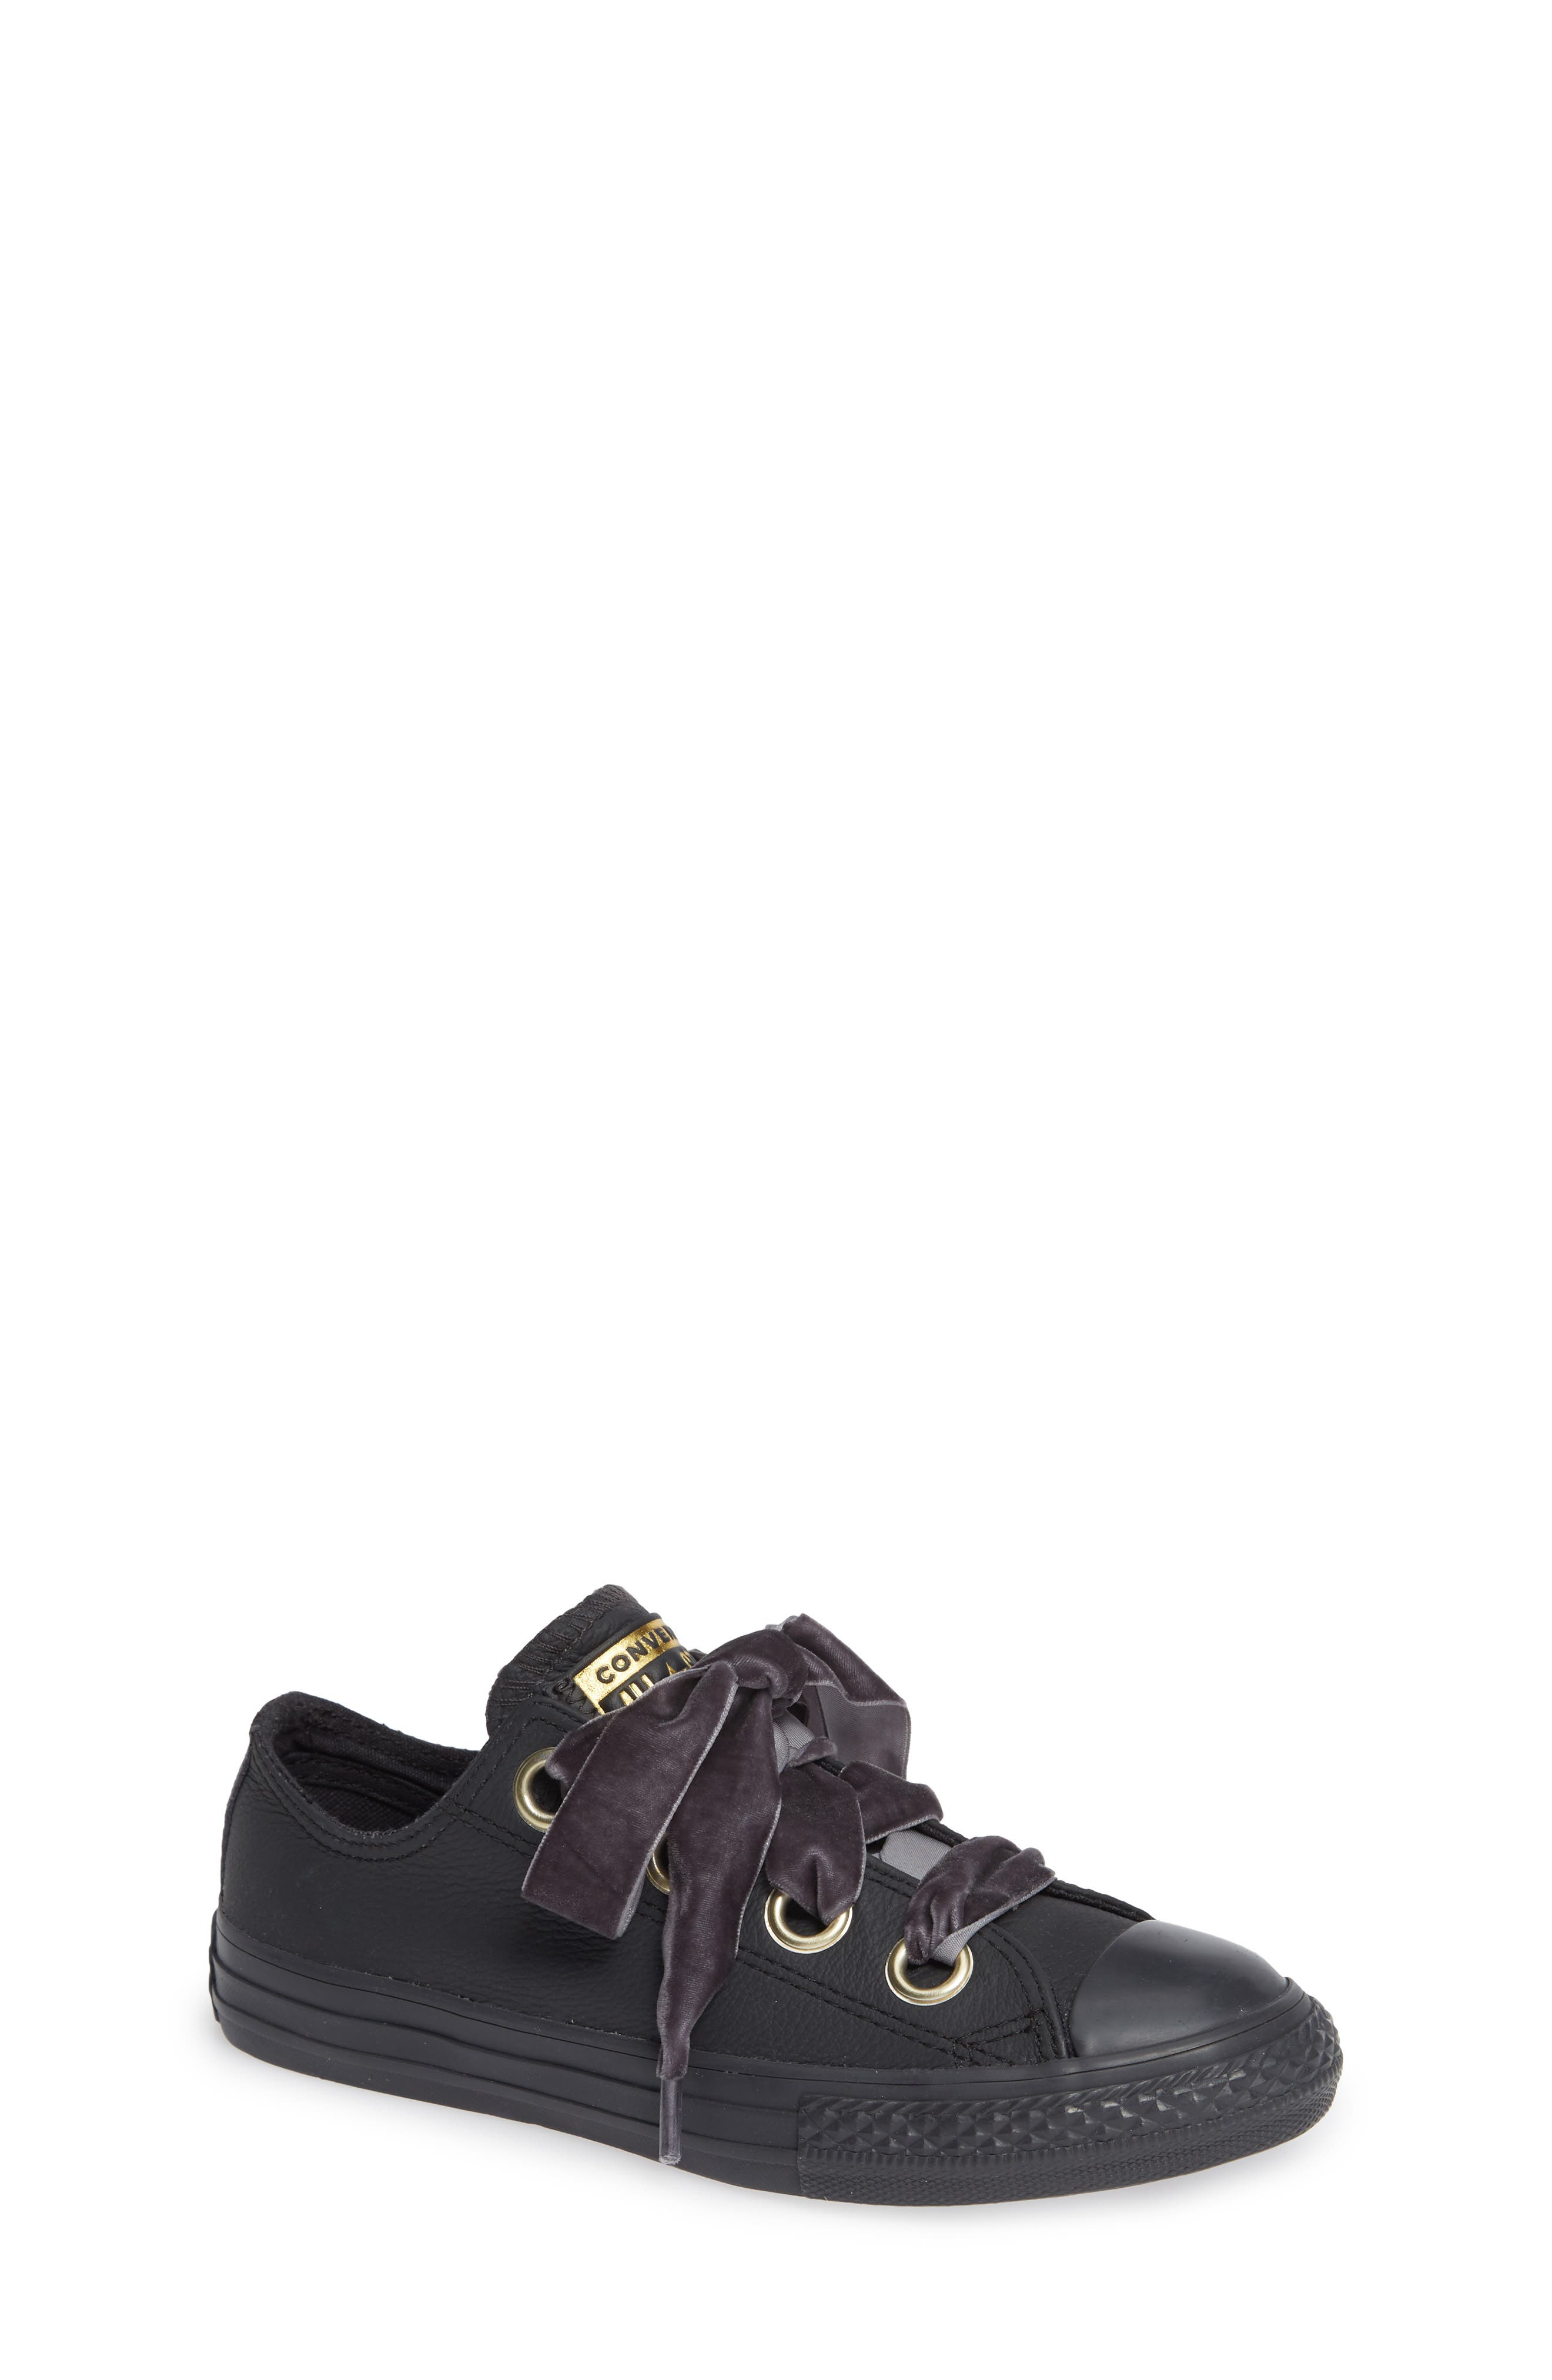 Chuck Taylor<sup>®</sup> All Star<sup>®</sup> Big Eyelet Leather Sneaker,                         Main,                         color, BLACK